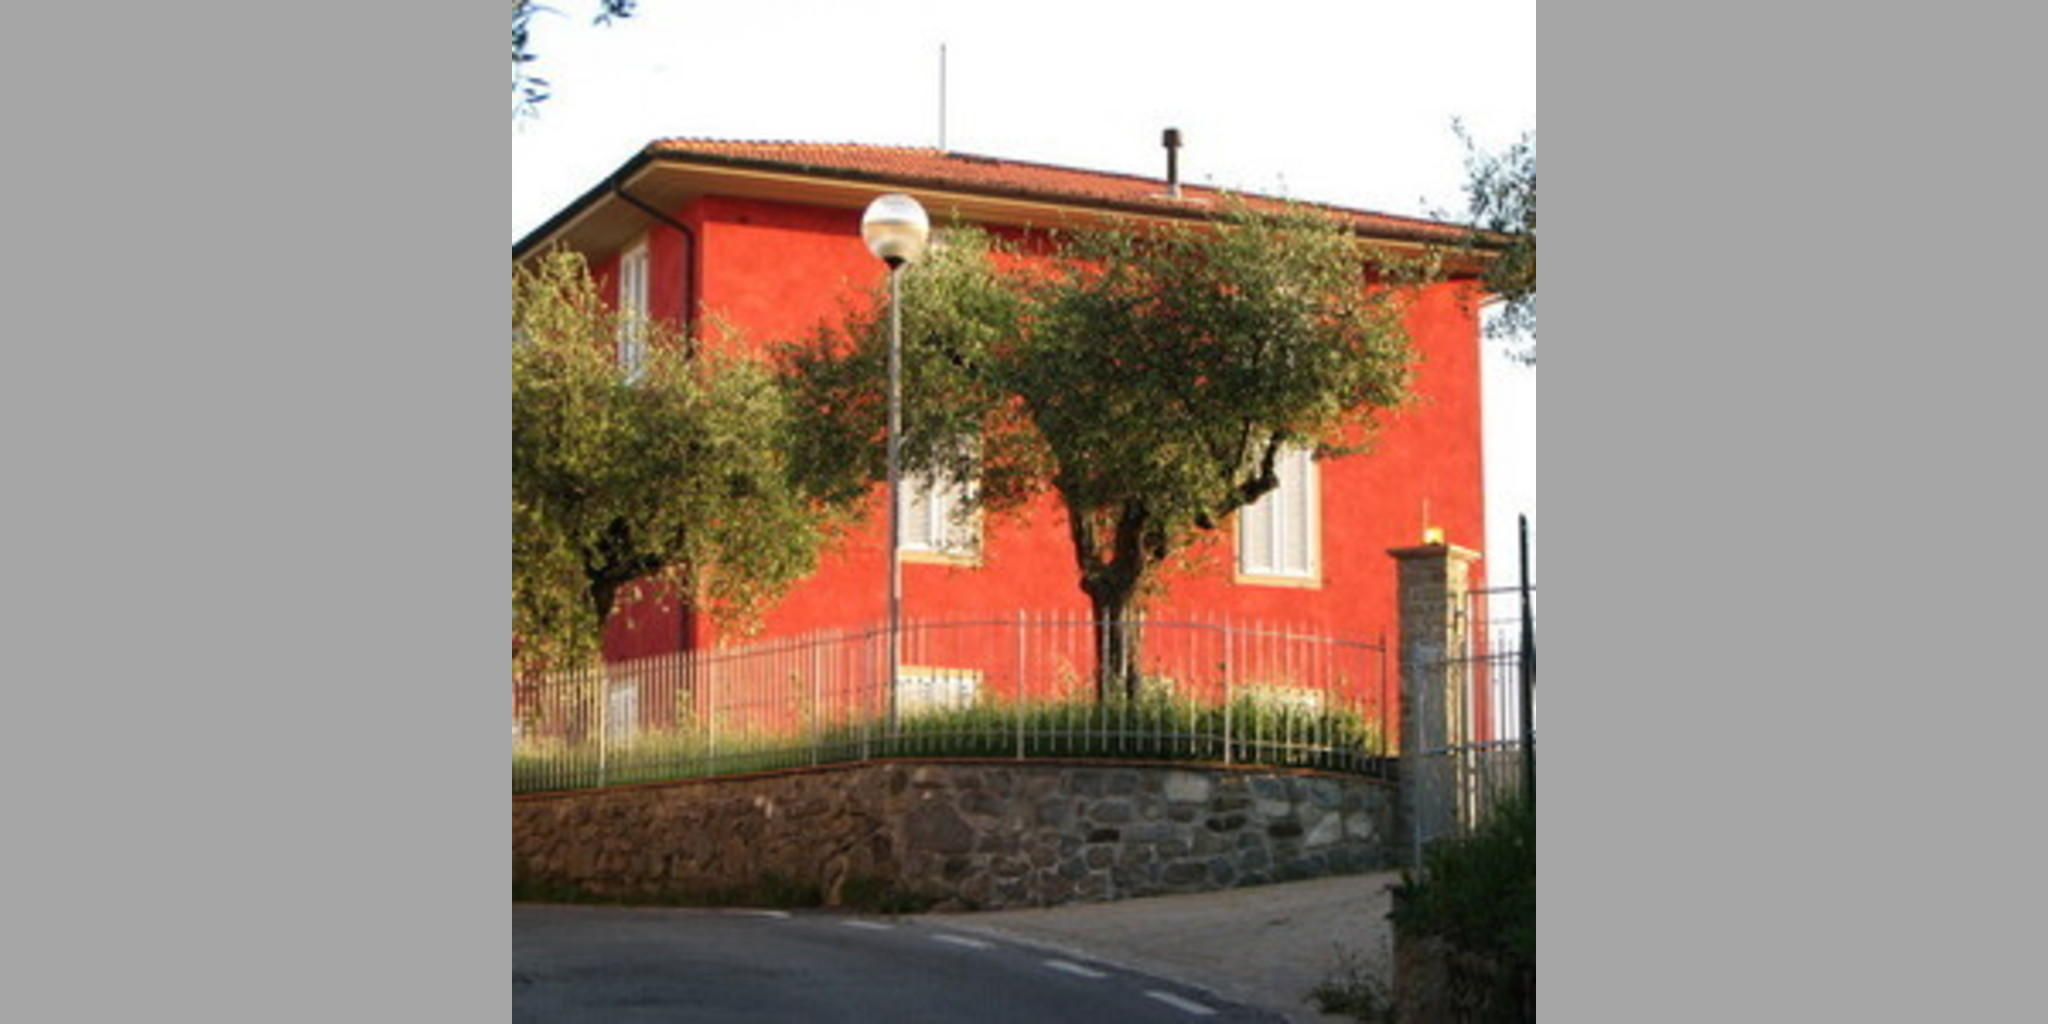 Bed & Breakfast Pescia - Pescia 2